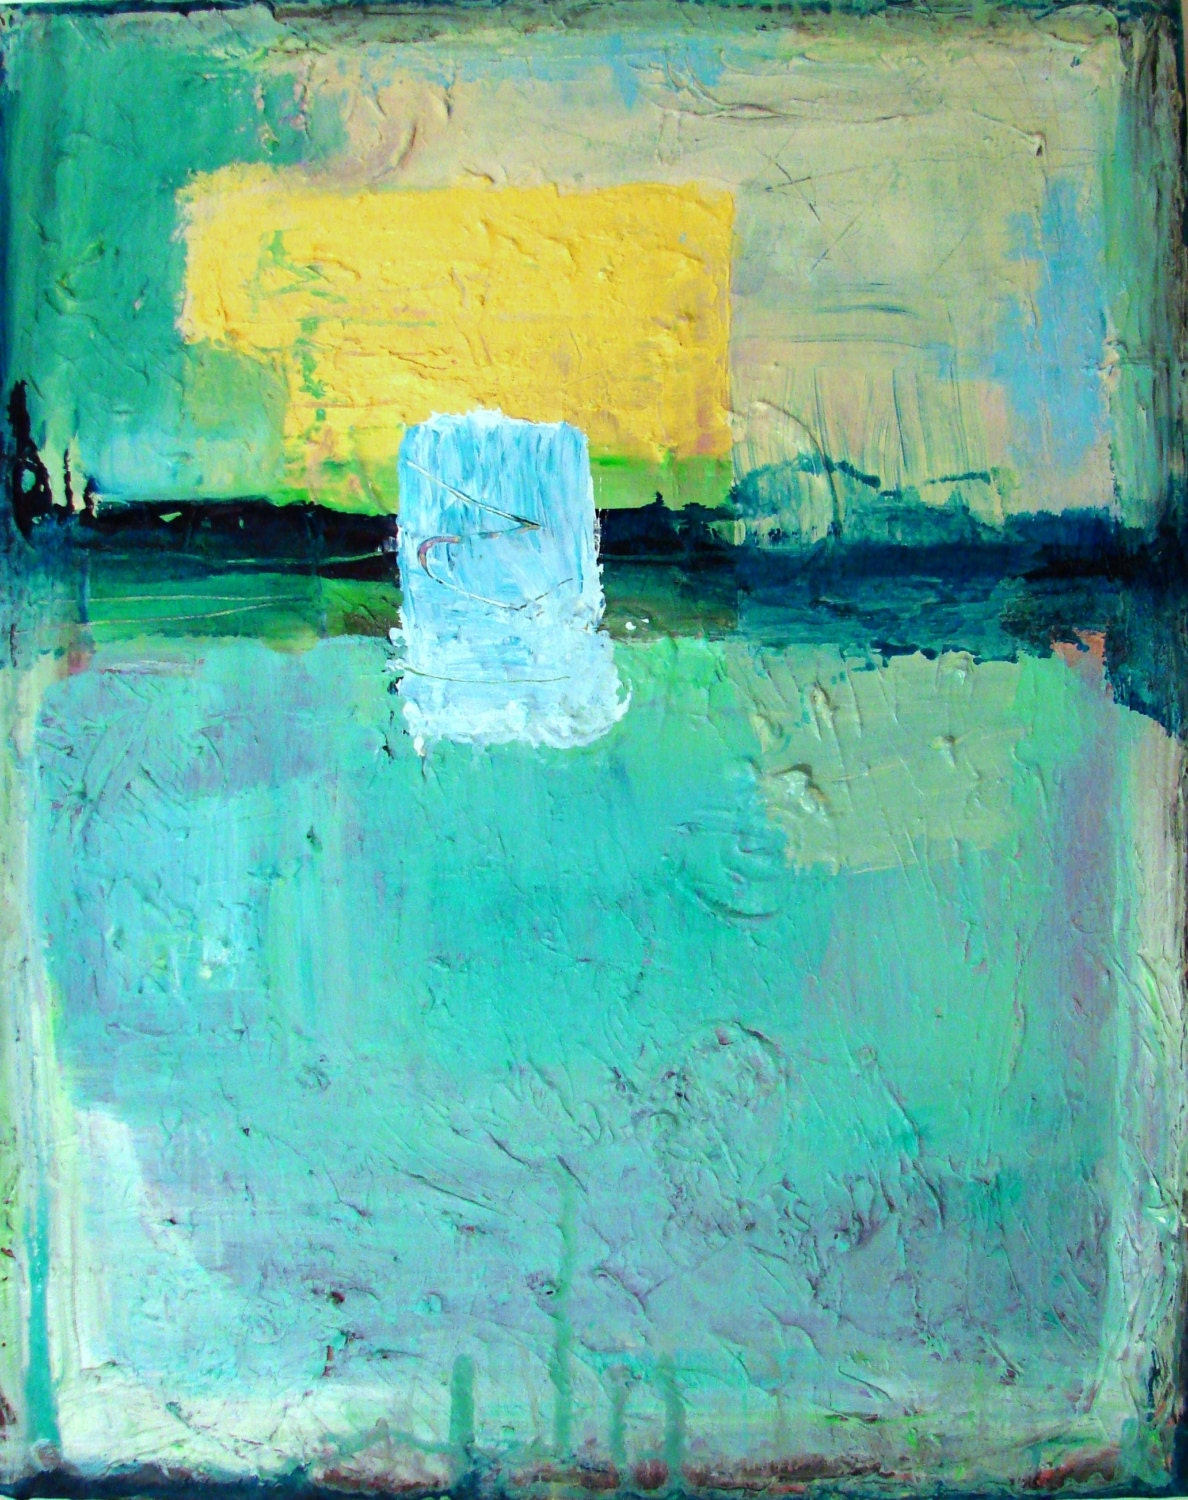 Abstract Painting Acrylic Blue Yellow 16 X 20 By